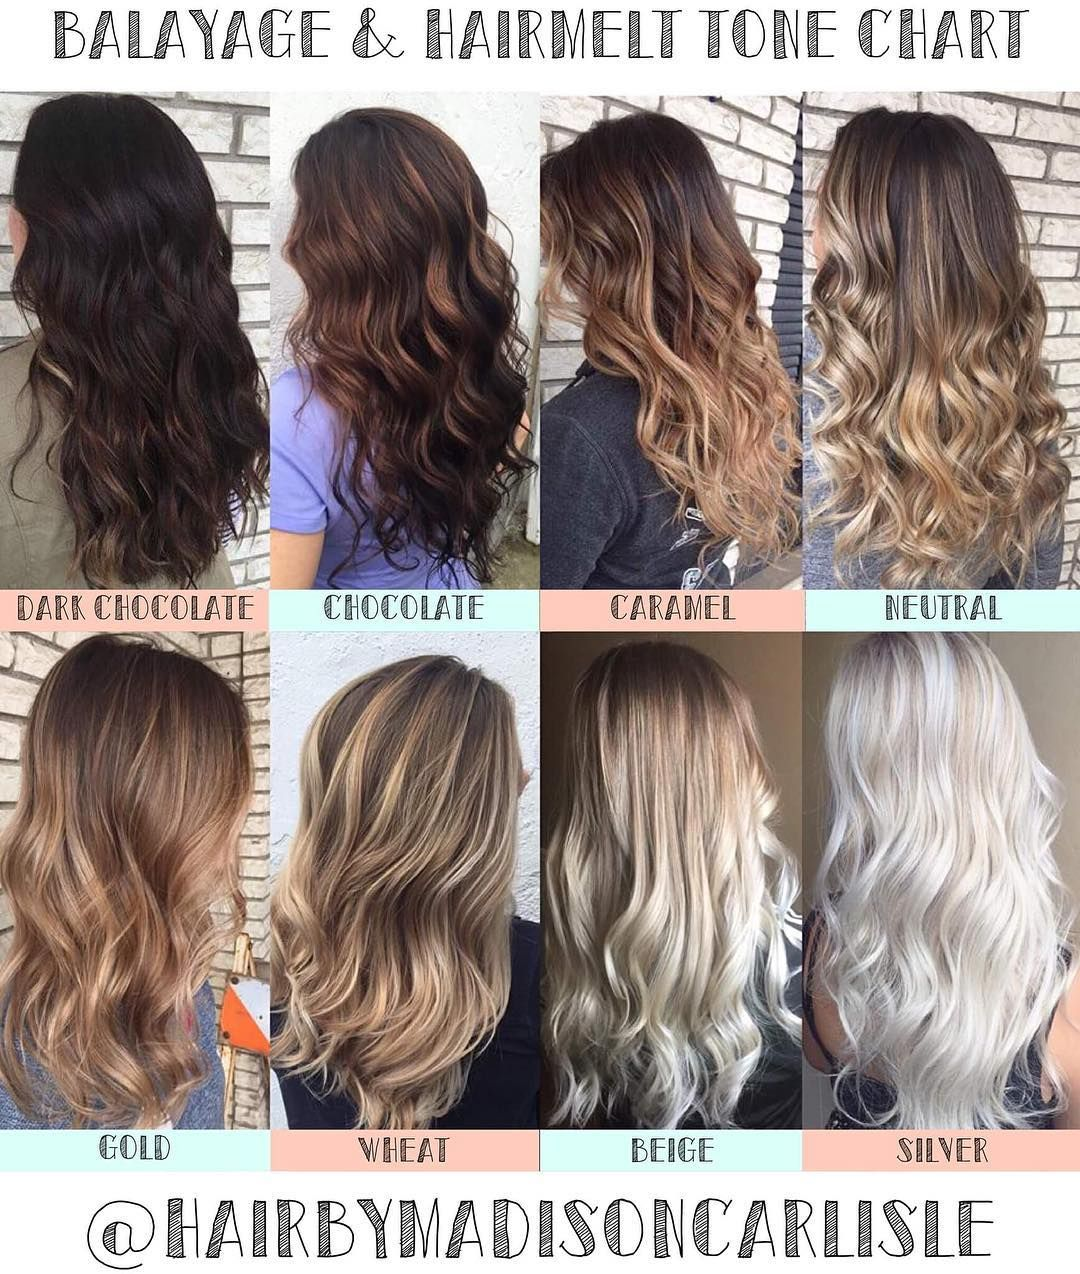 Hair Color Tone Chart Balayage Amp Color Specialist